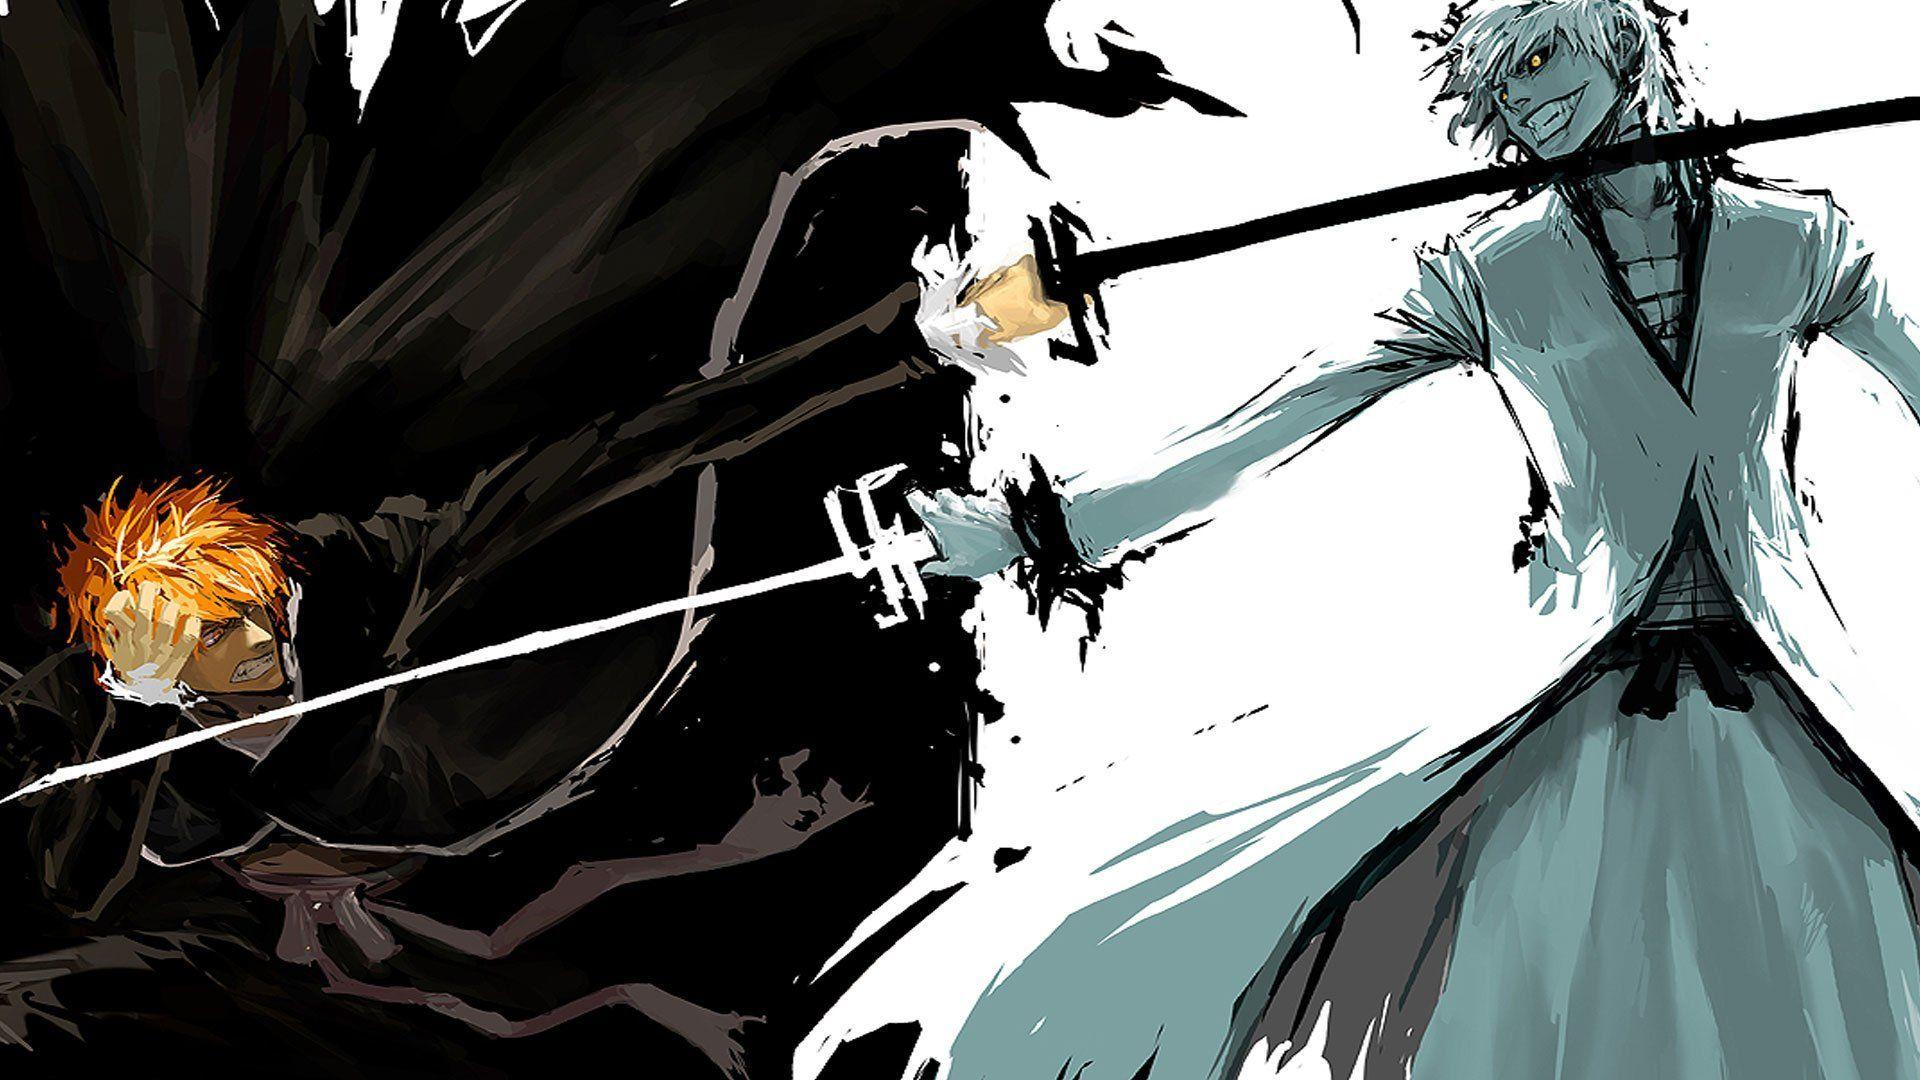 Hd Wallpapers Of Bleach For Mobiles Wallpaper Cave